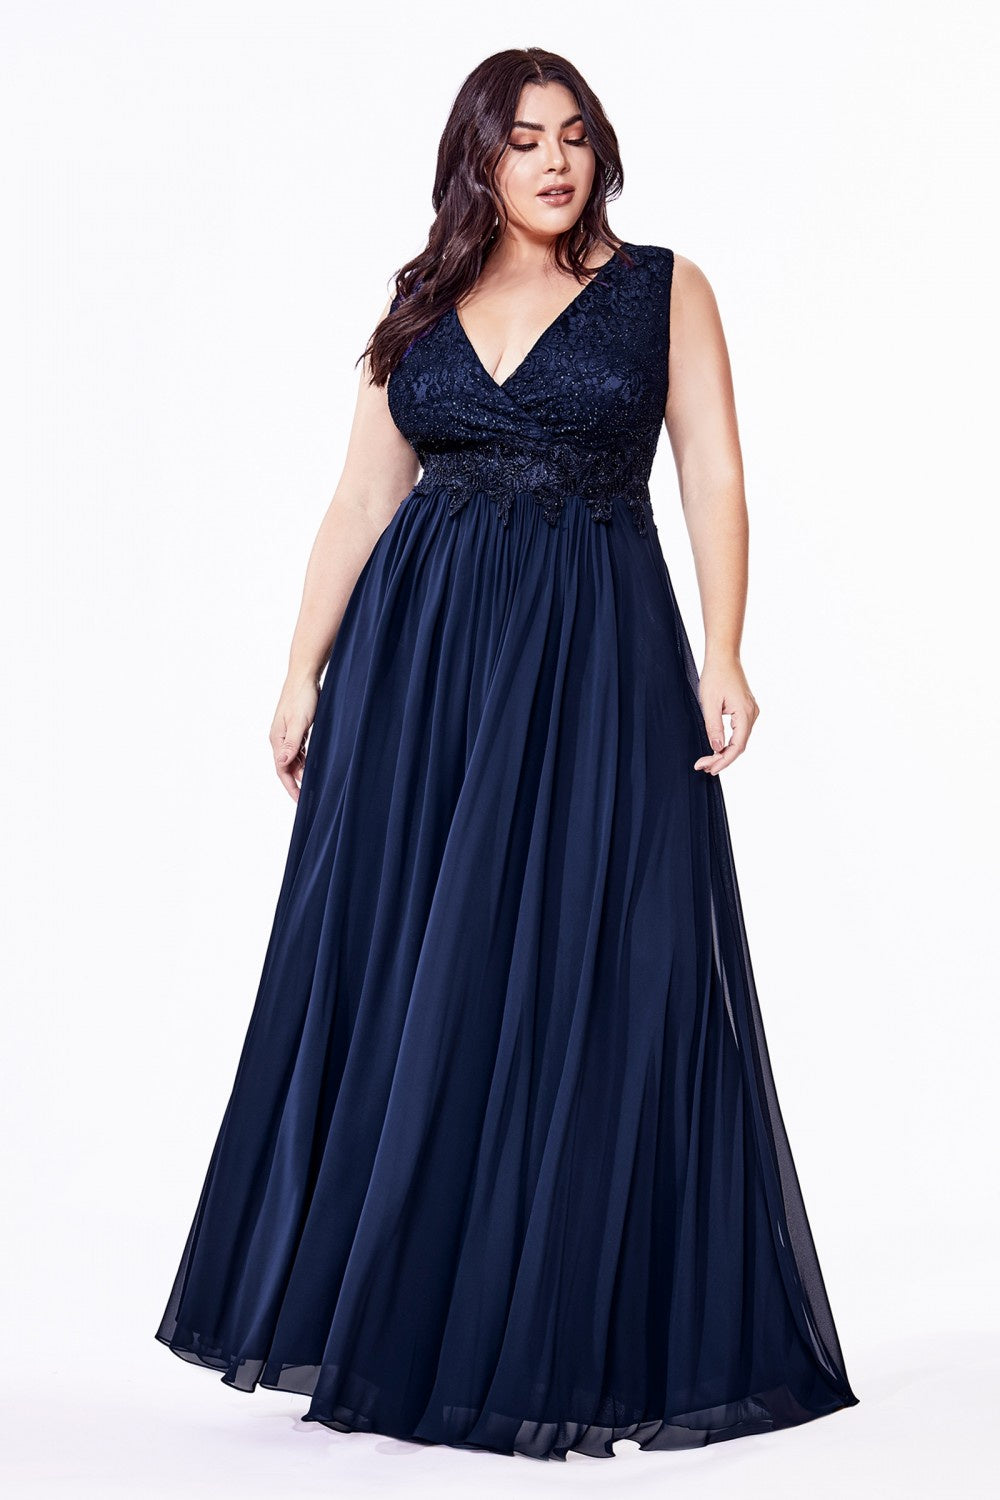 Navy A-line chiffon dress with a lace bodice